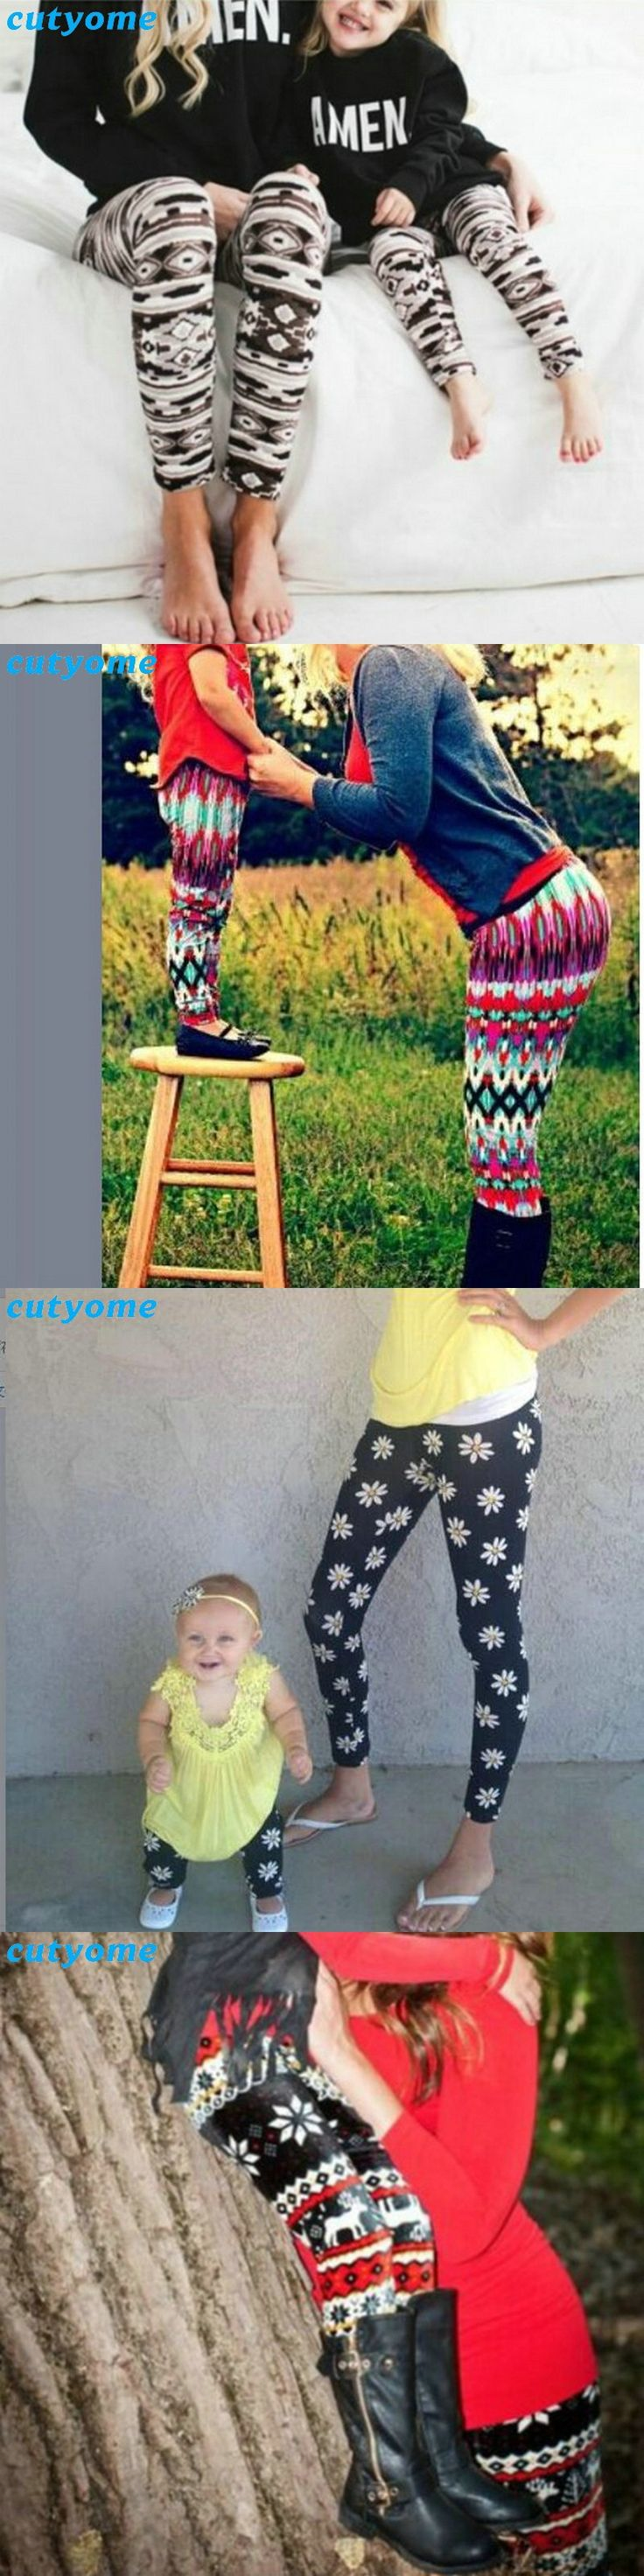 Cutyome Family Look Matching Mother Daughter Clothes Floral Woman Kids Girls Leggings Matching Elastic Pants Christmas Outfits